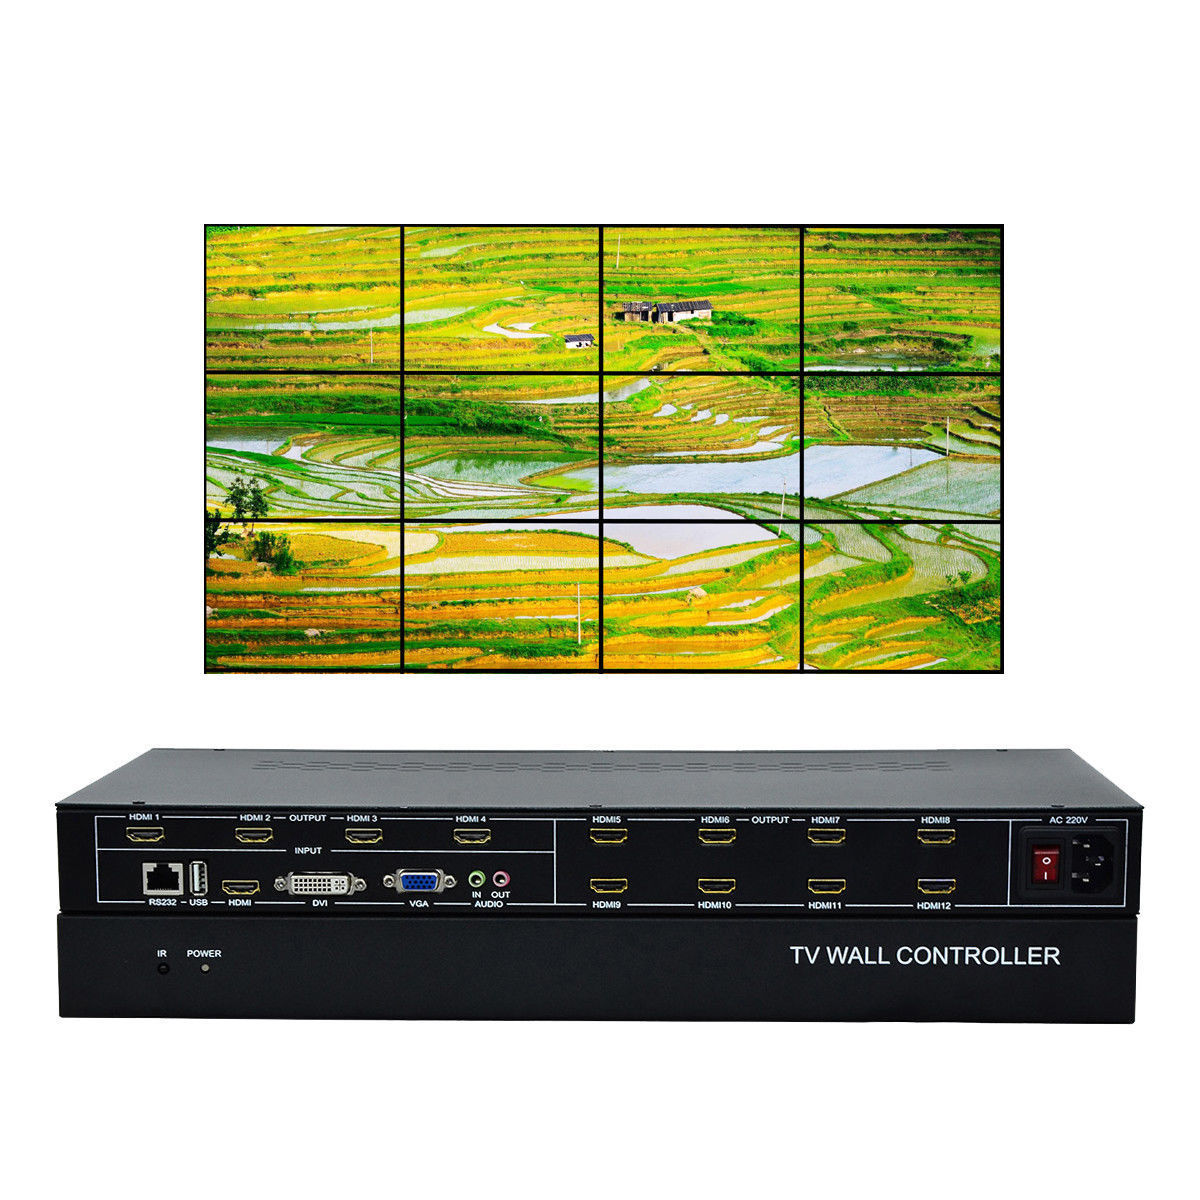 ESZYM 12 canales TV Video pared controlador 3x4 2x6 2x5 HDMI DVI VGA USB Video procesador